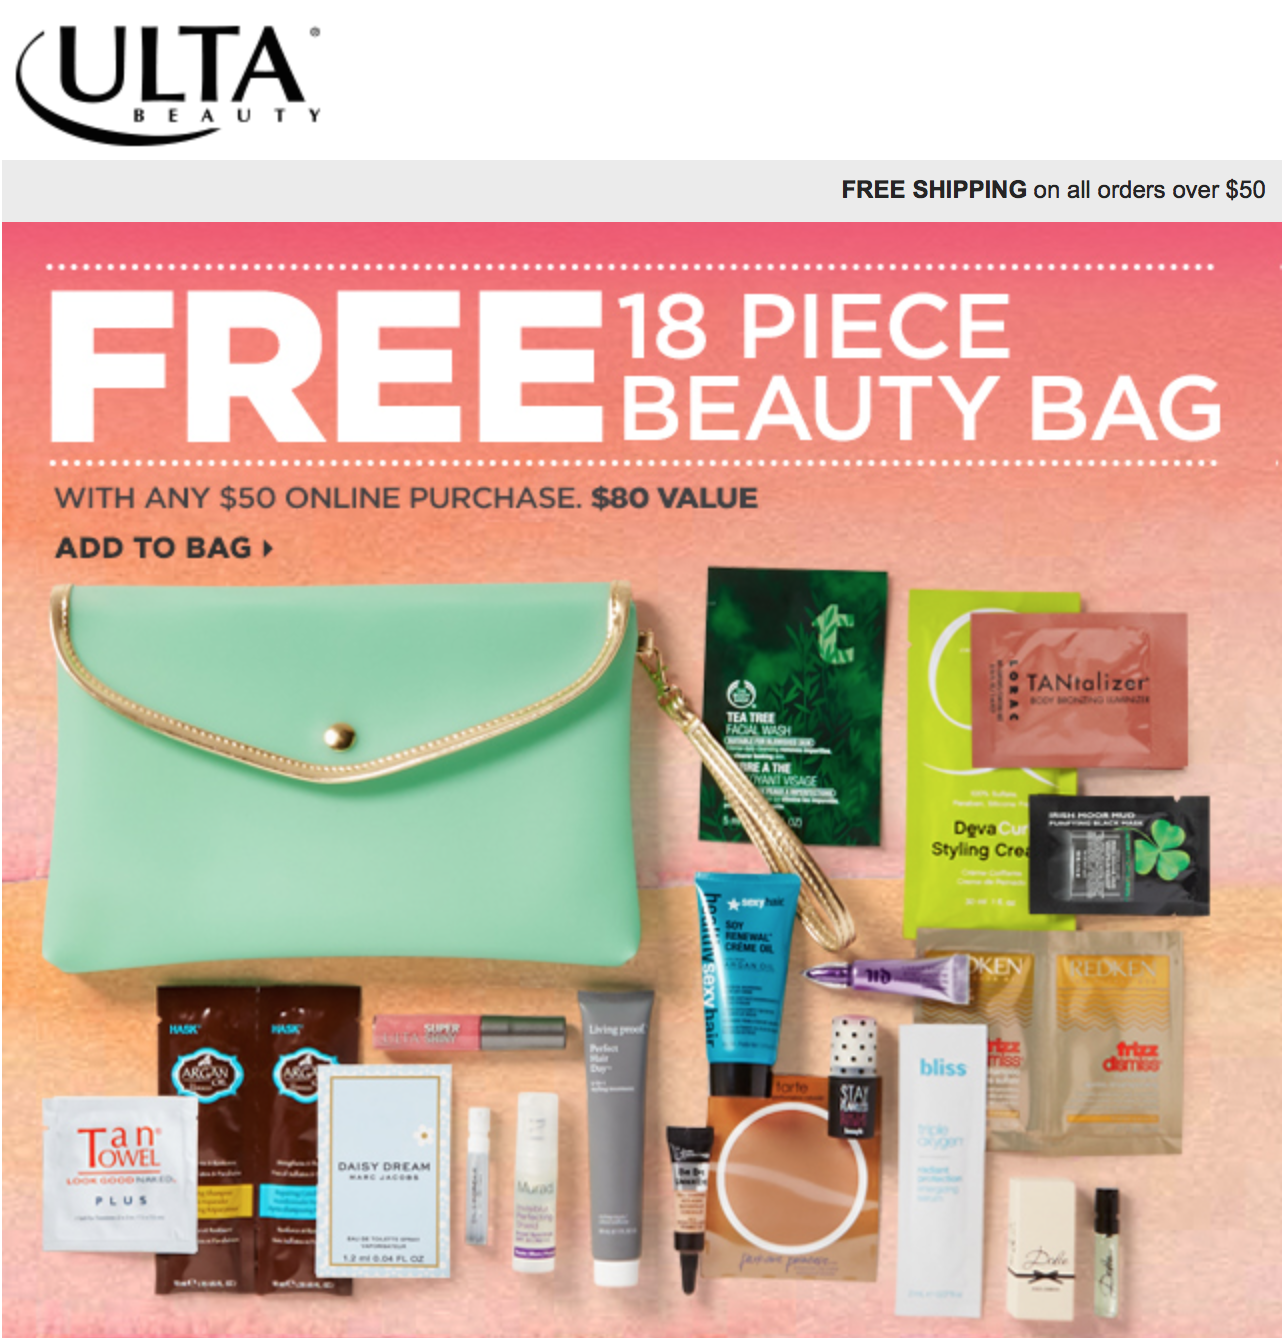 Do you want an Ulta gift with purchase? Take a look at the beauty gifts with purchase we're giving away now. You'll want to hurry, these are only available while supplies last!.